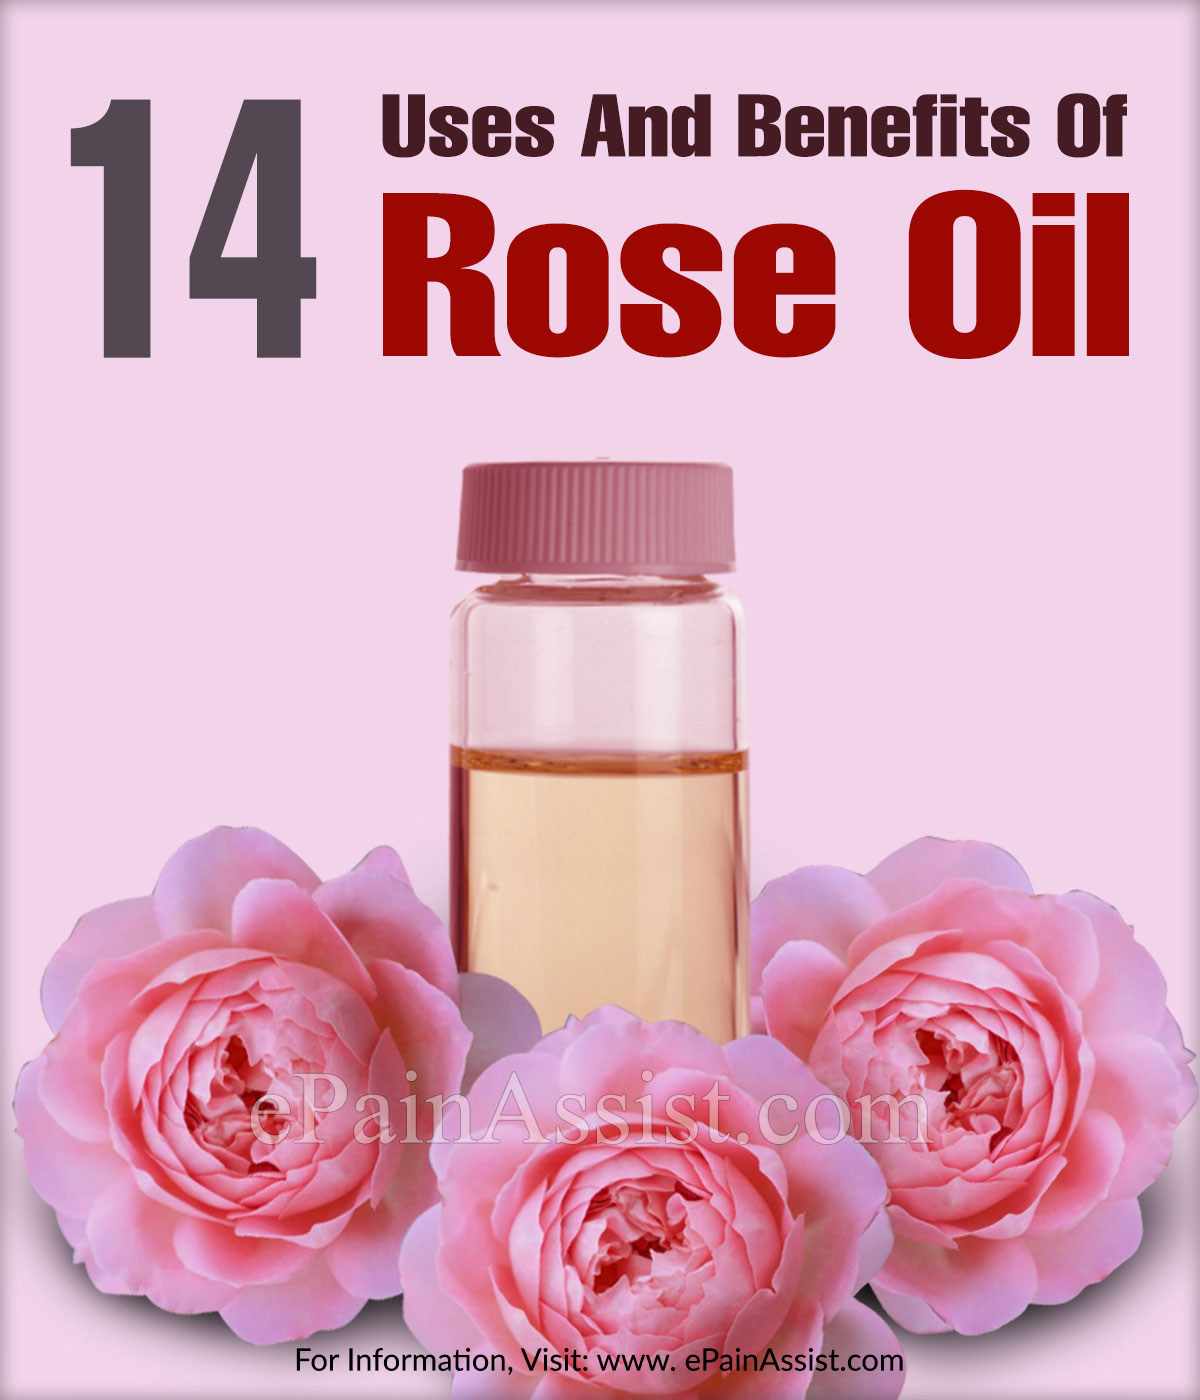 16 Uses And Benefits Of Rose Oil